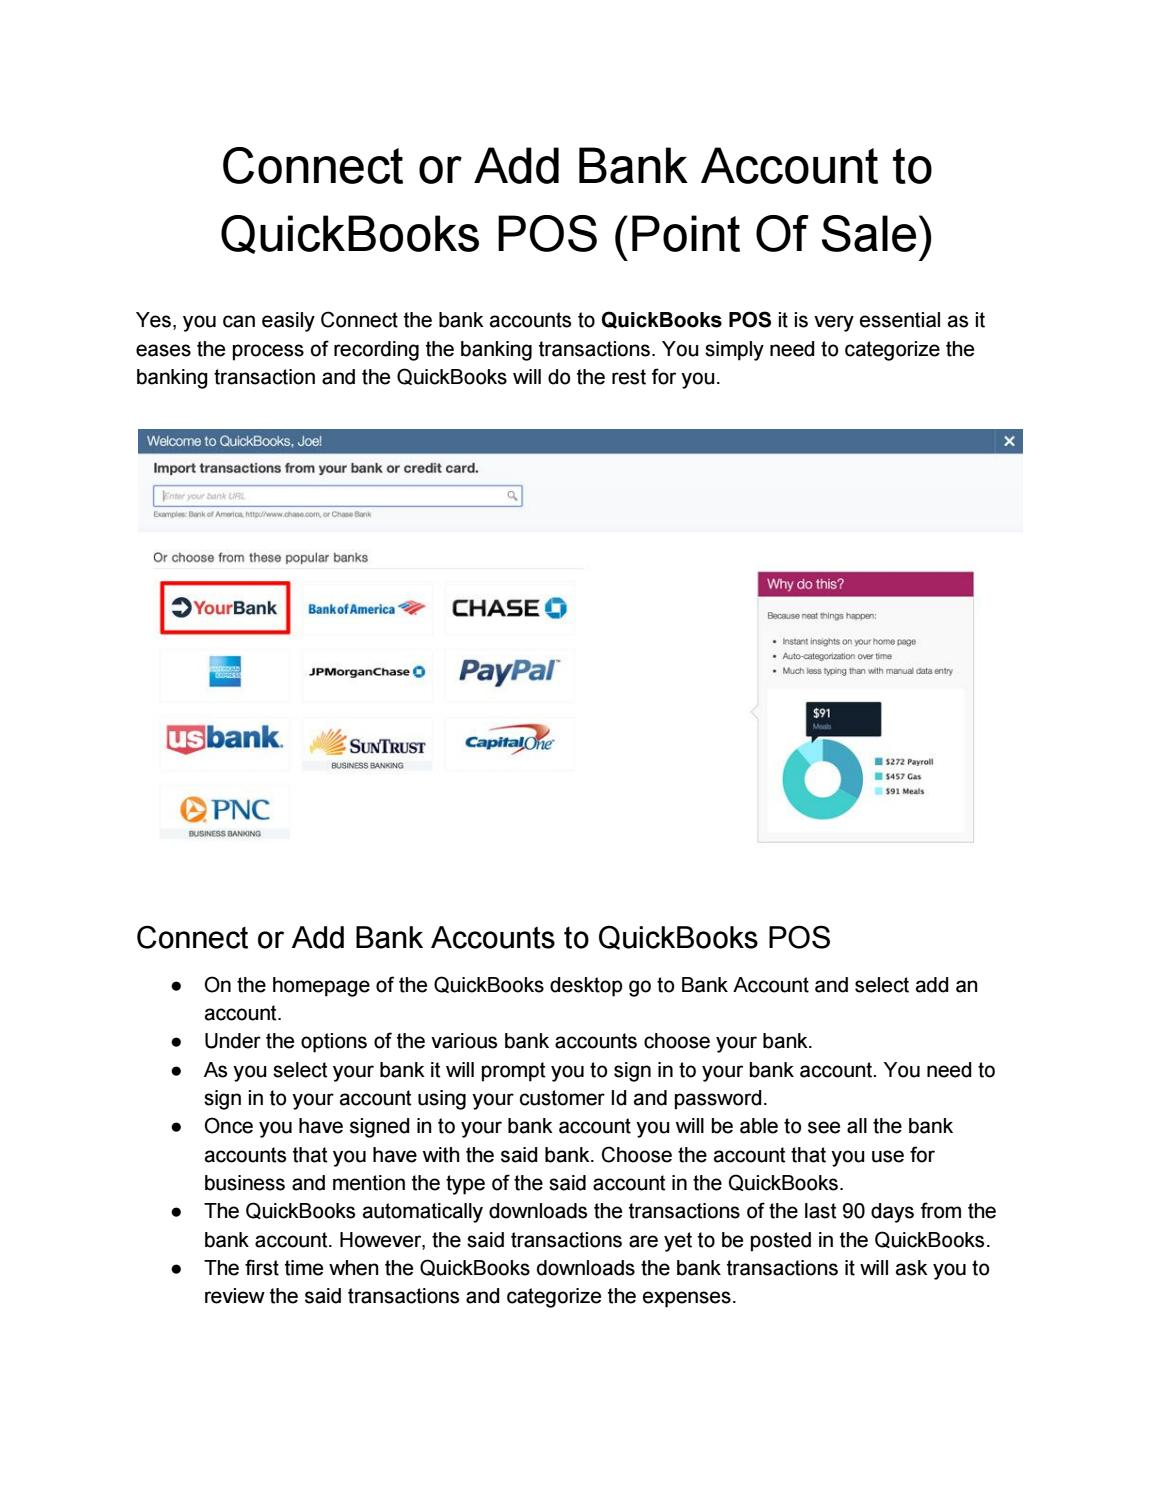 Is i can Connect or Add Bank Account to QuickBooks POS